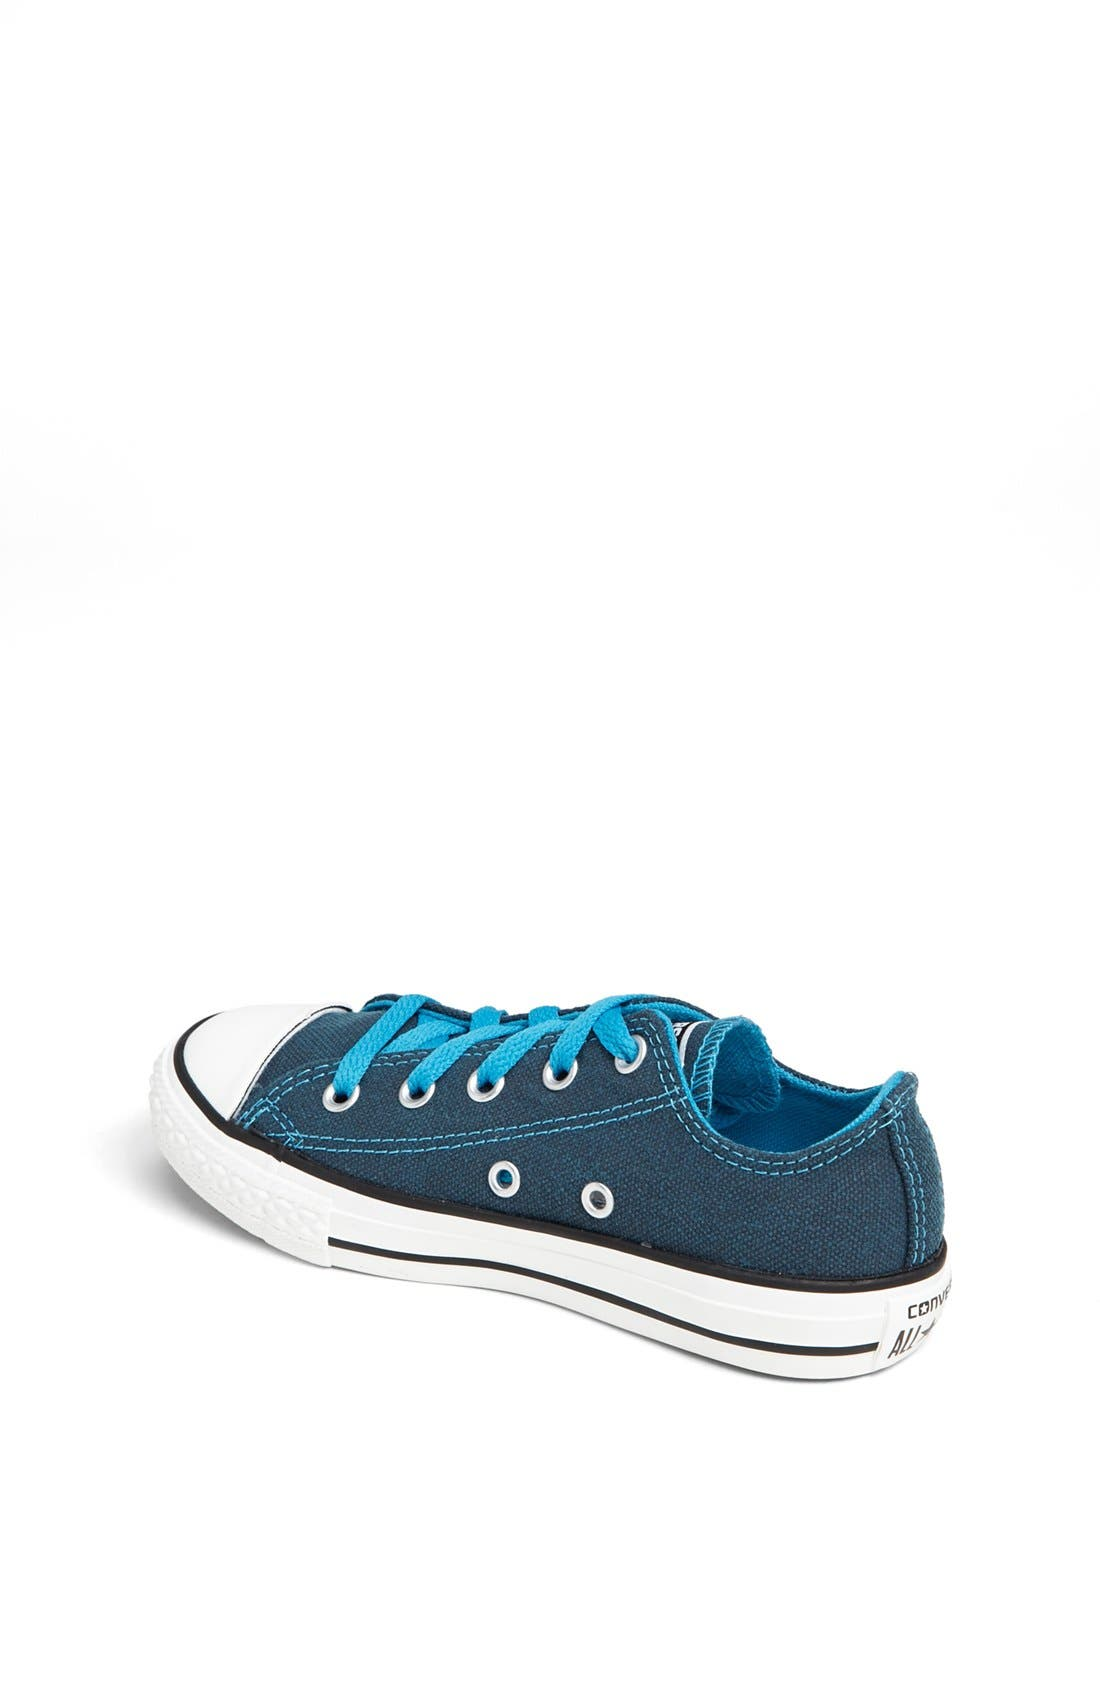 Alternate Image 2  - Converse Chuck Taylor® All Star® Low Top Sneaker (Toddler & Little Kid)